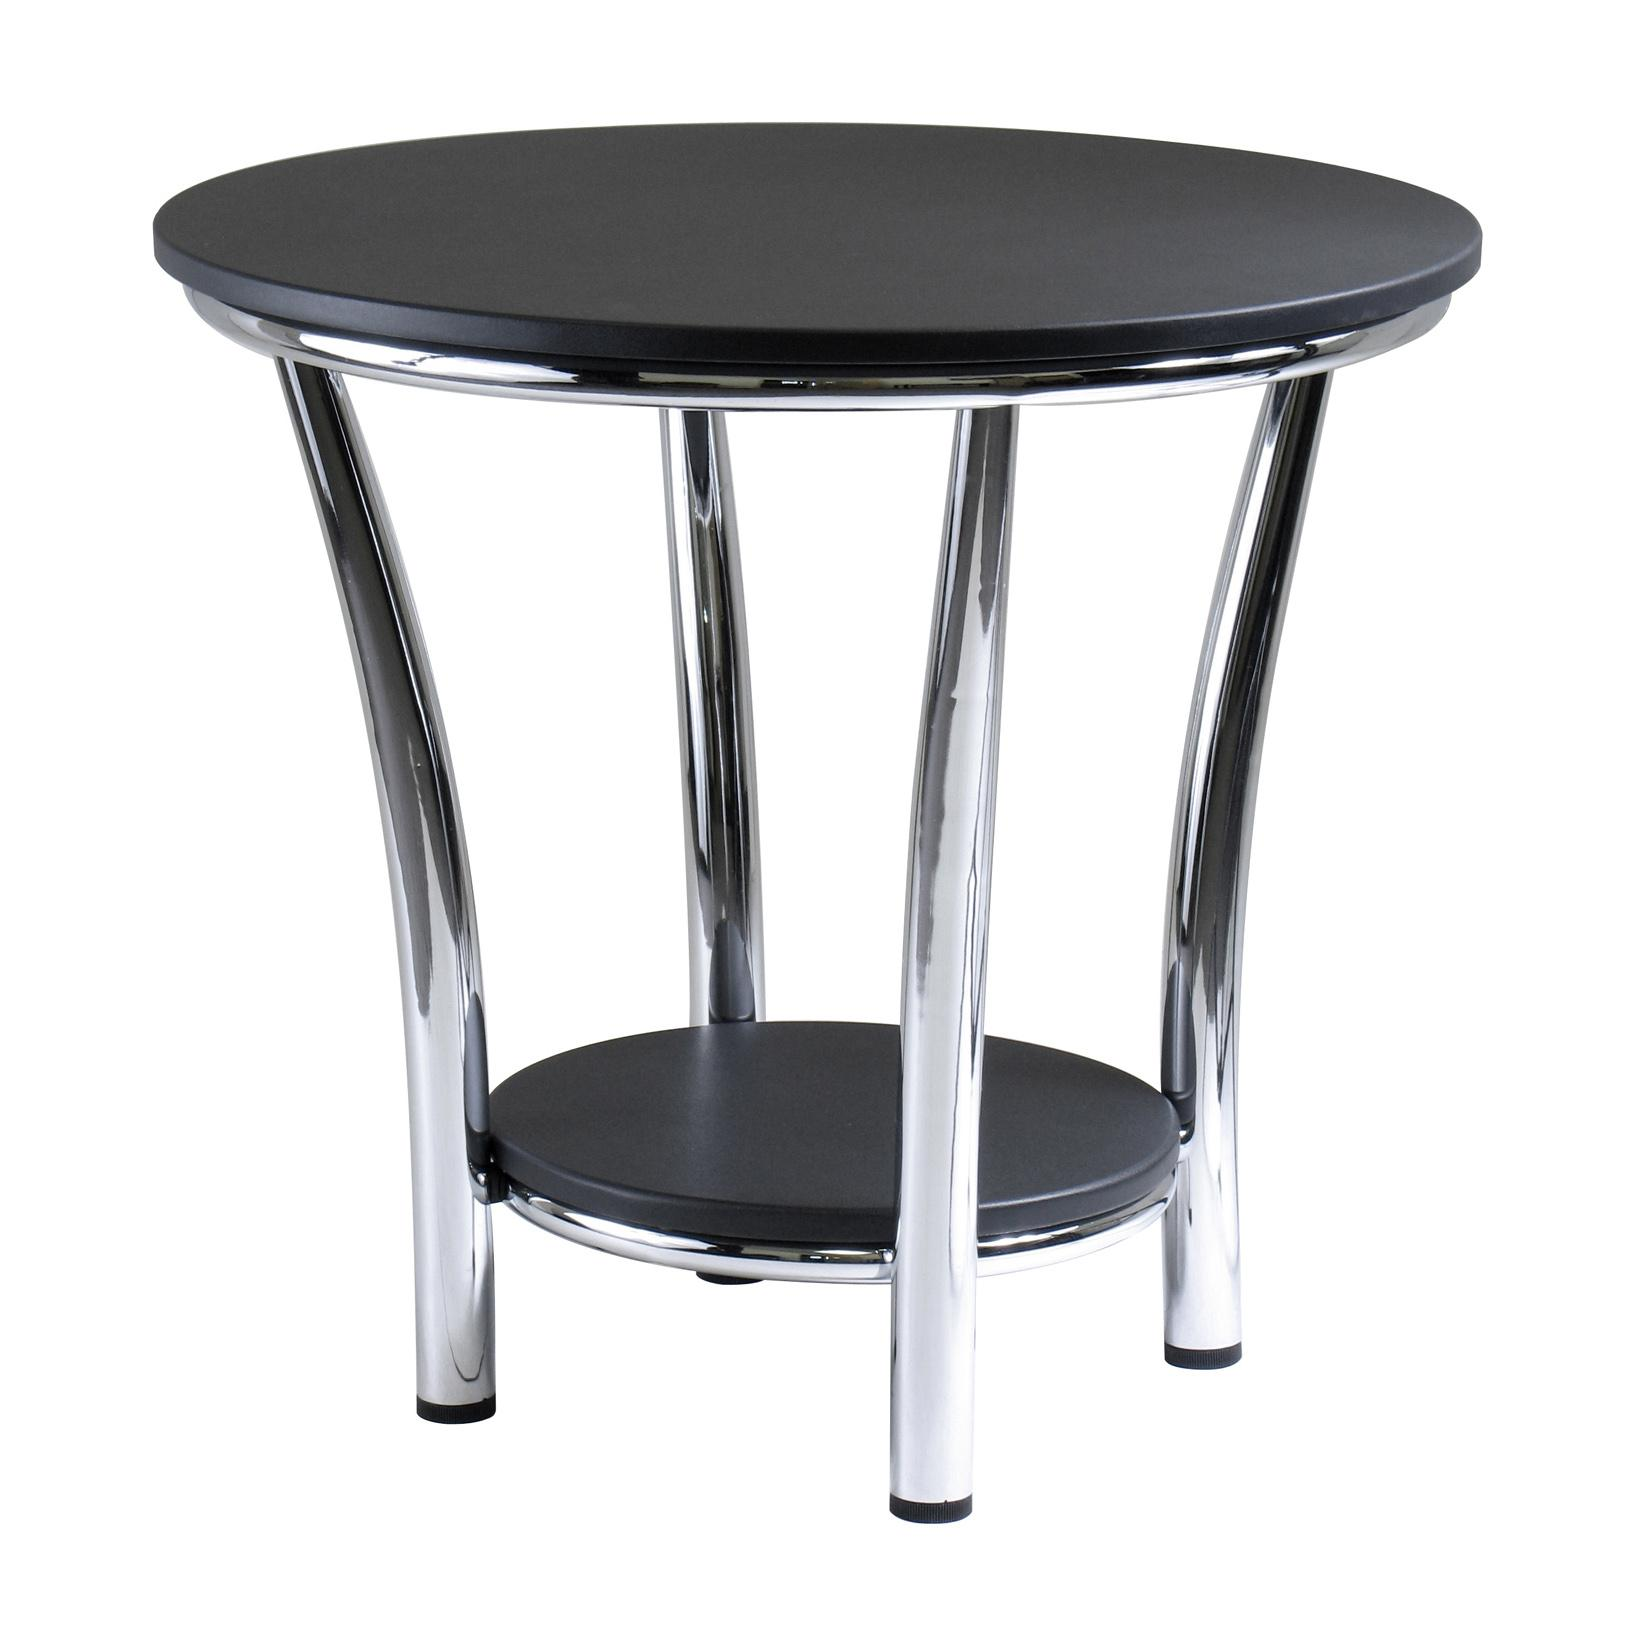 winsome wood round end table black top metal legs from the manufacturer oriental cocktail tables outdoor furniture and fire pit pipe flange dimensions dog crate pallet patio